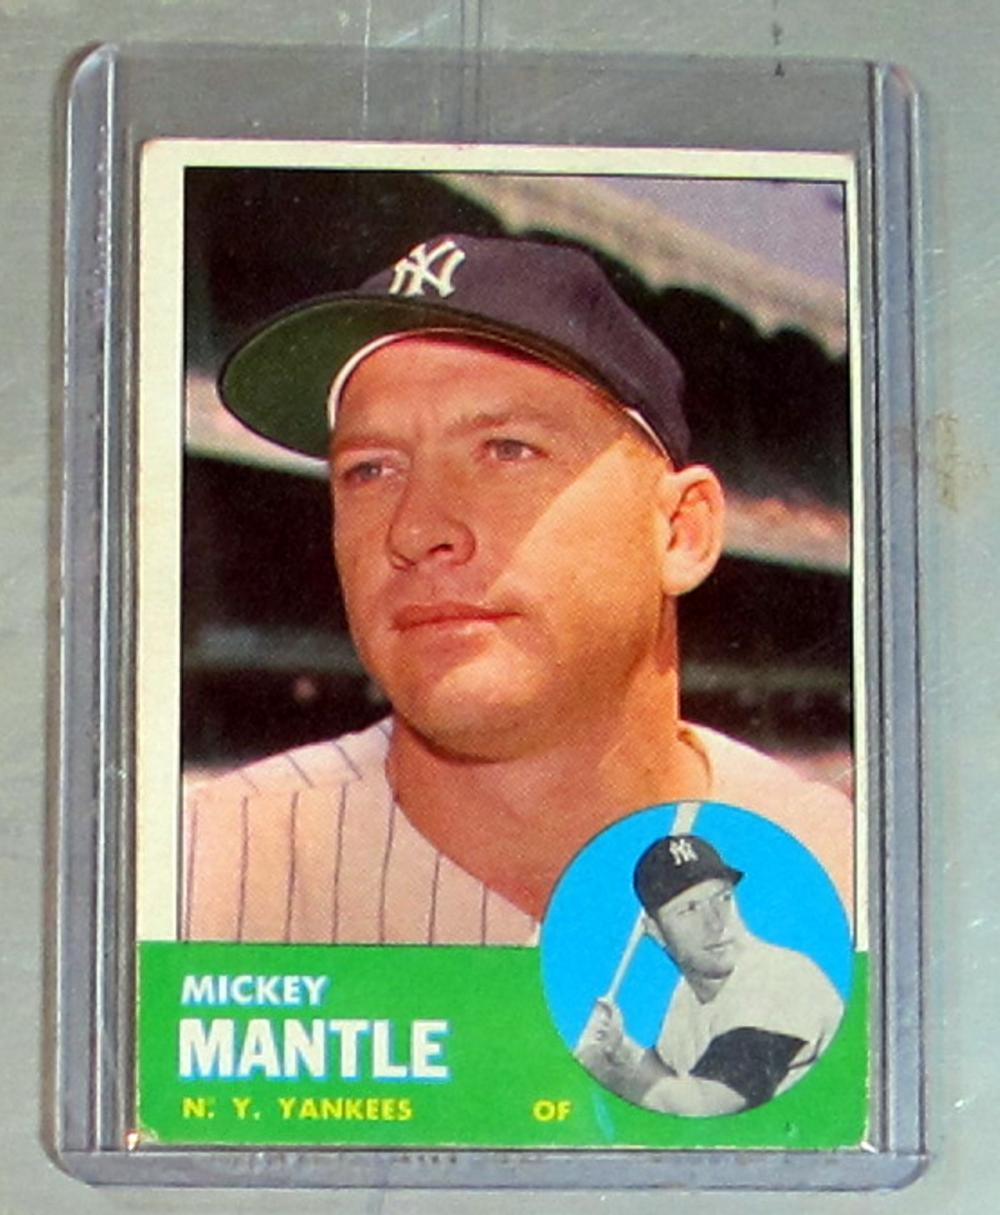 1963 TOPPS BASEBALL CARD 200 MICKEY MANTLE HOF NEW YORK YANKEES EX NICE